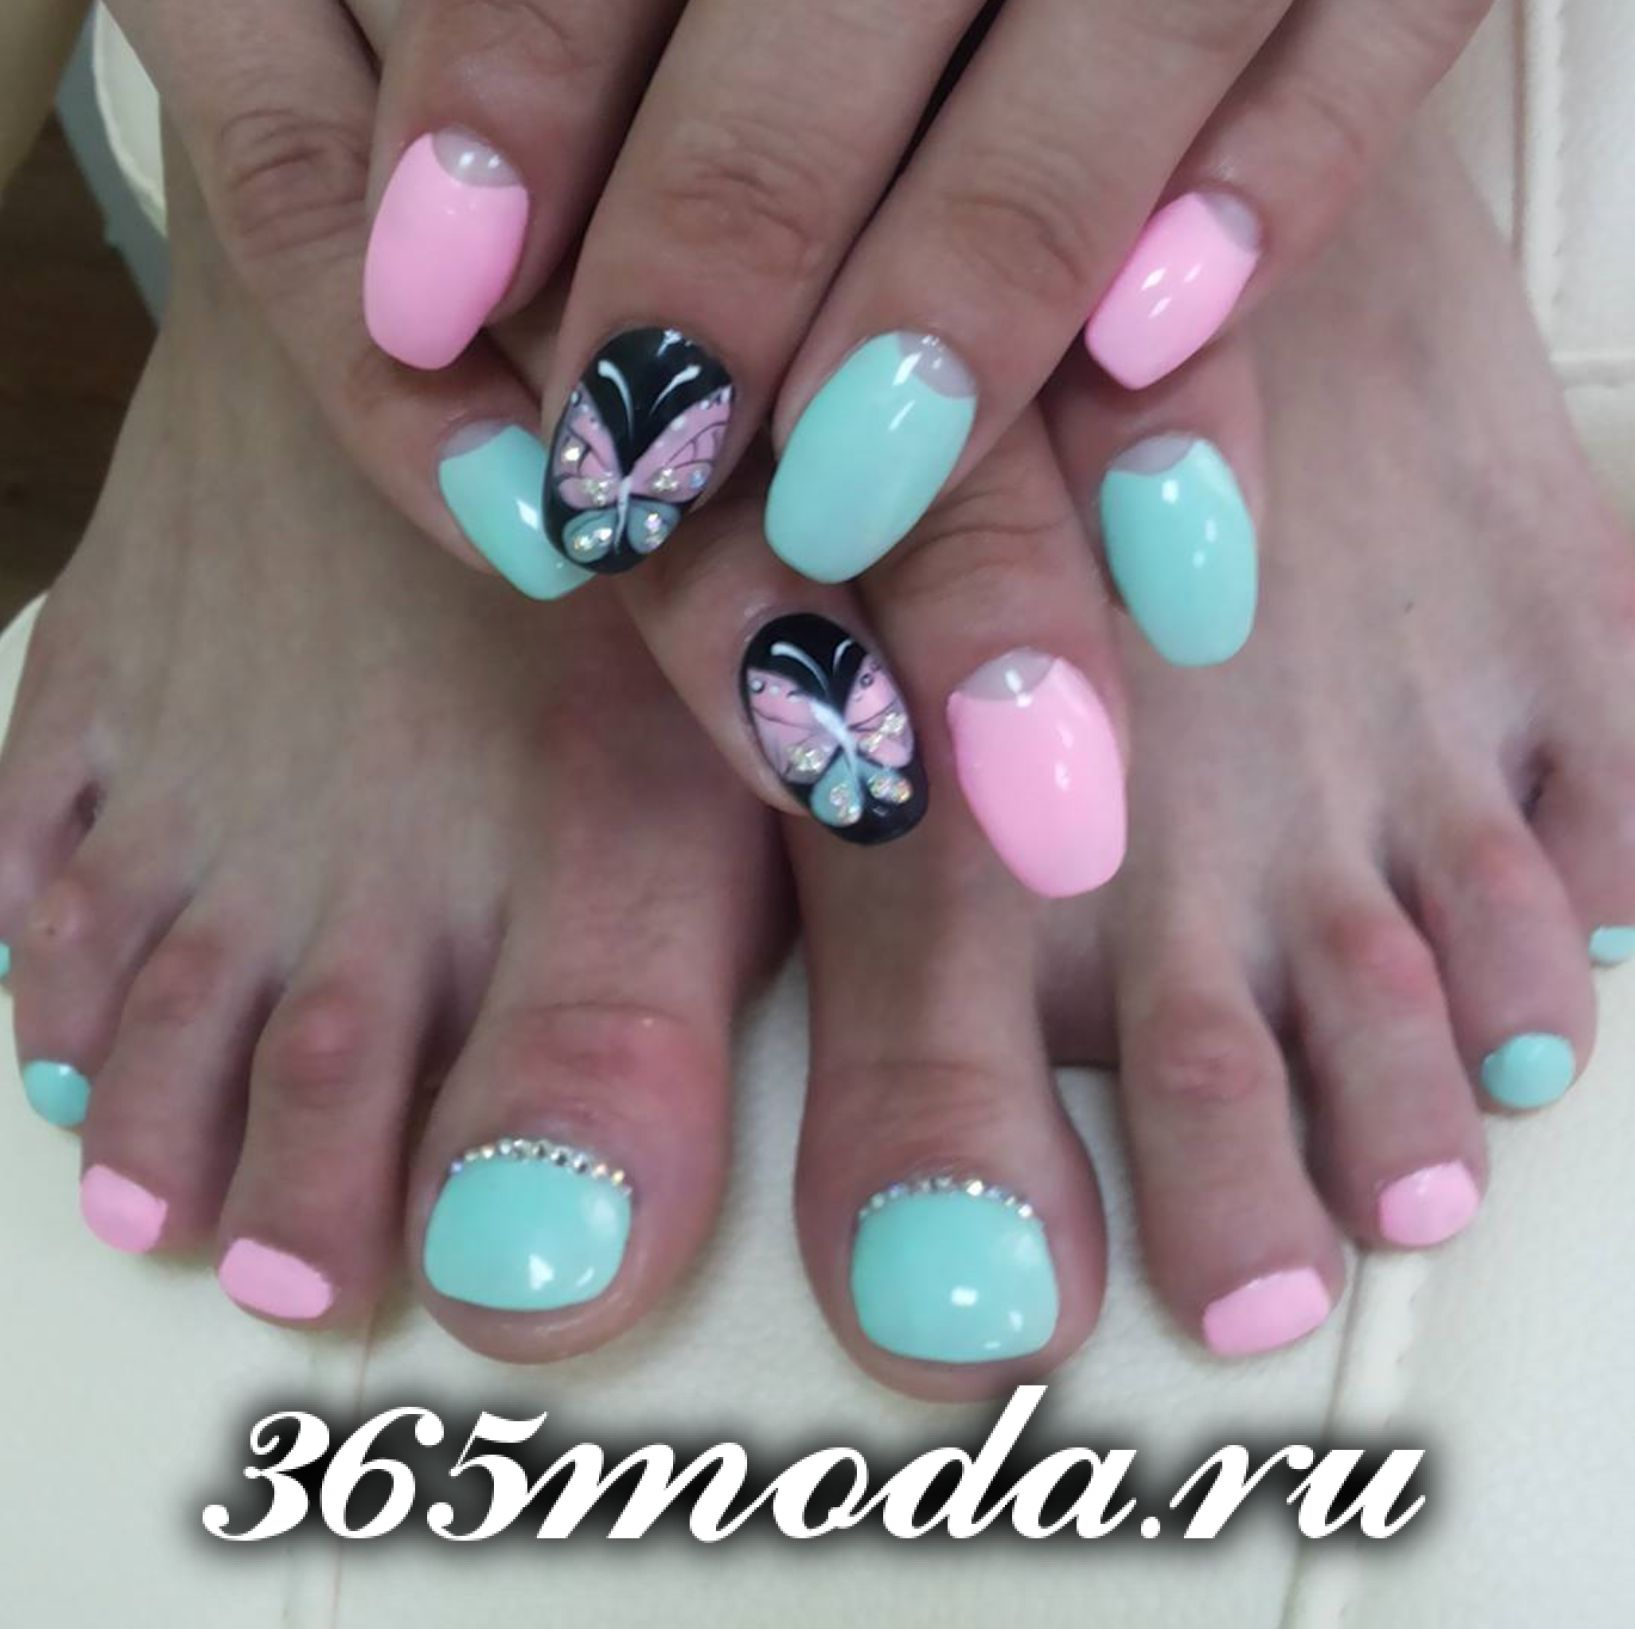 pedicur (4)